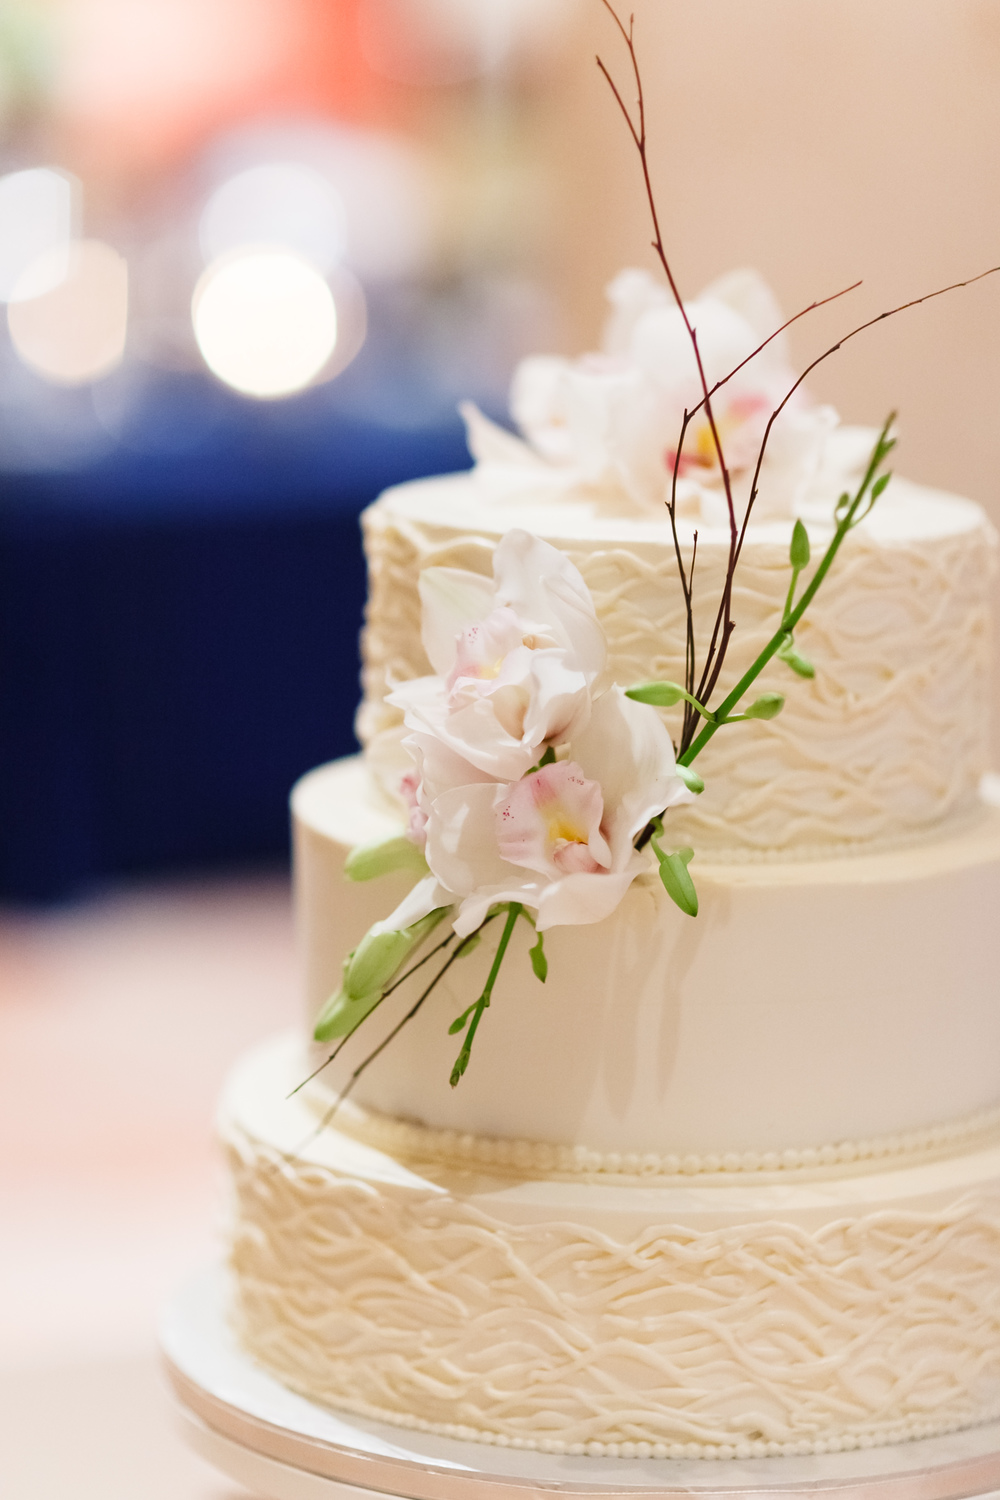 Waves Buttercream Wedding Cake - Photo by Don Mears Photography